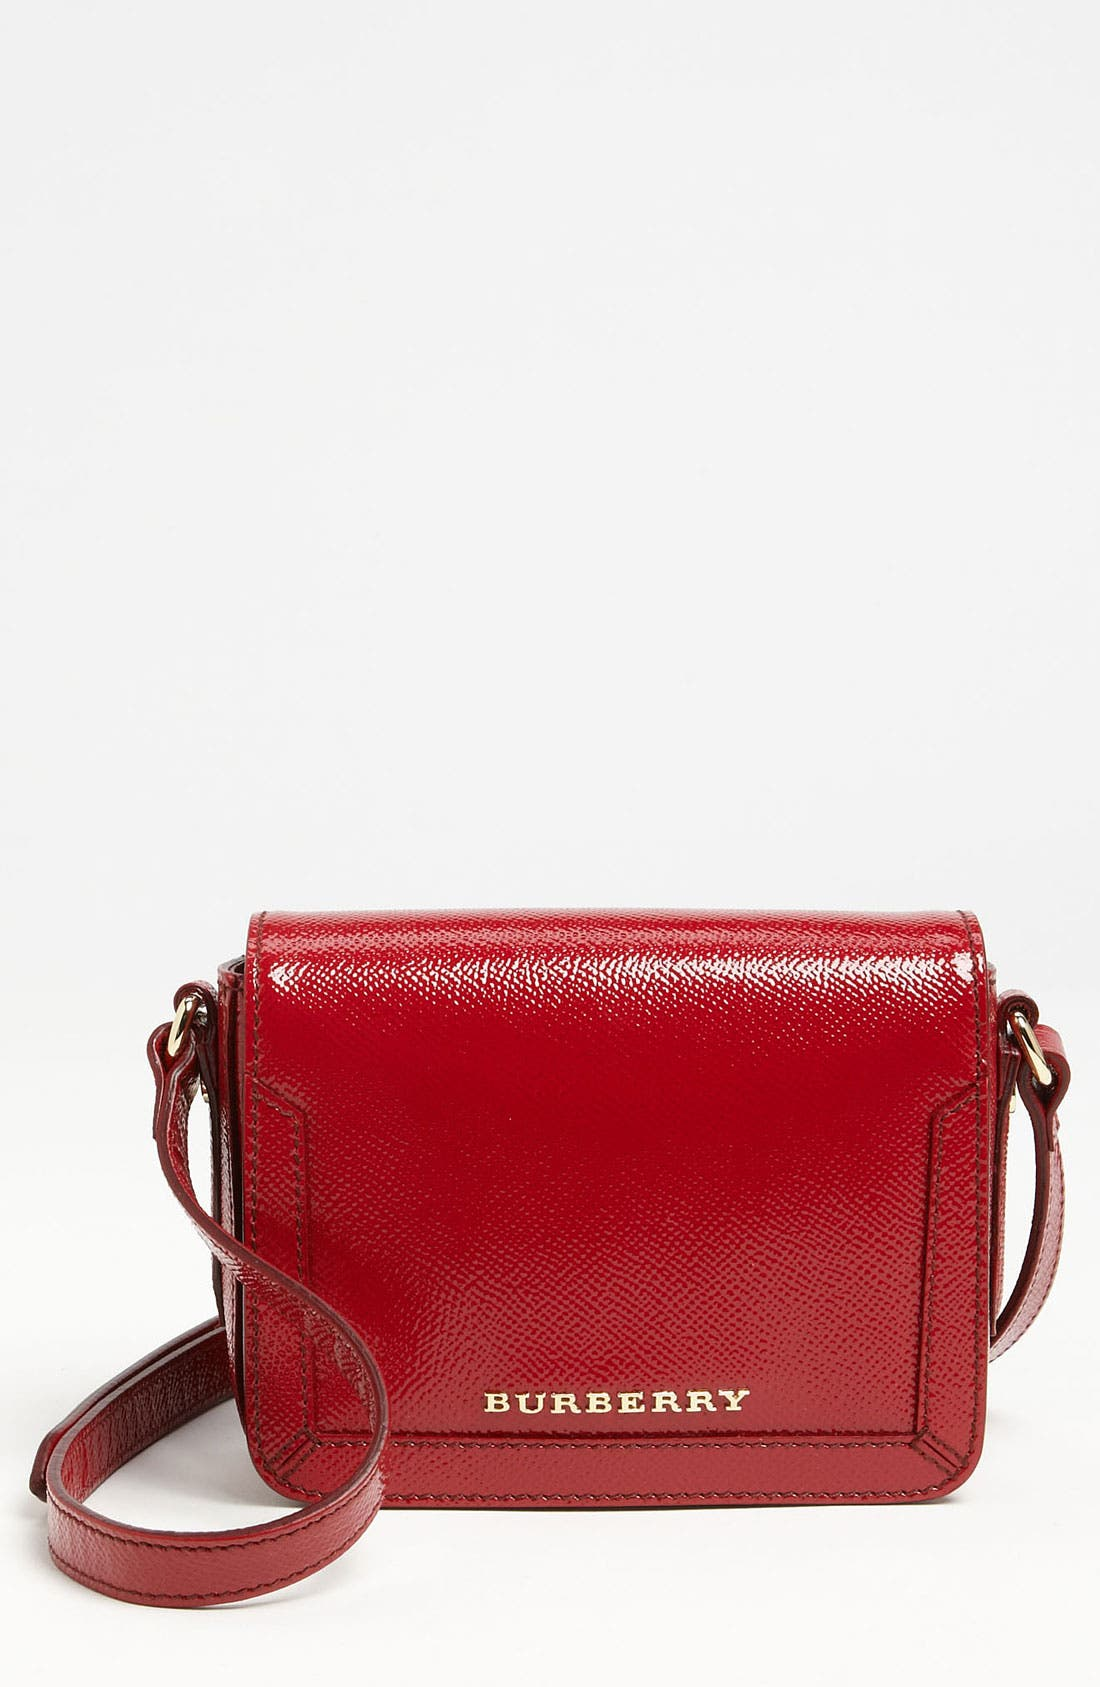 Alternate Image 1 Selected - Burberry 'Ladies London' Leather Crossbody Bag